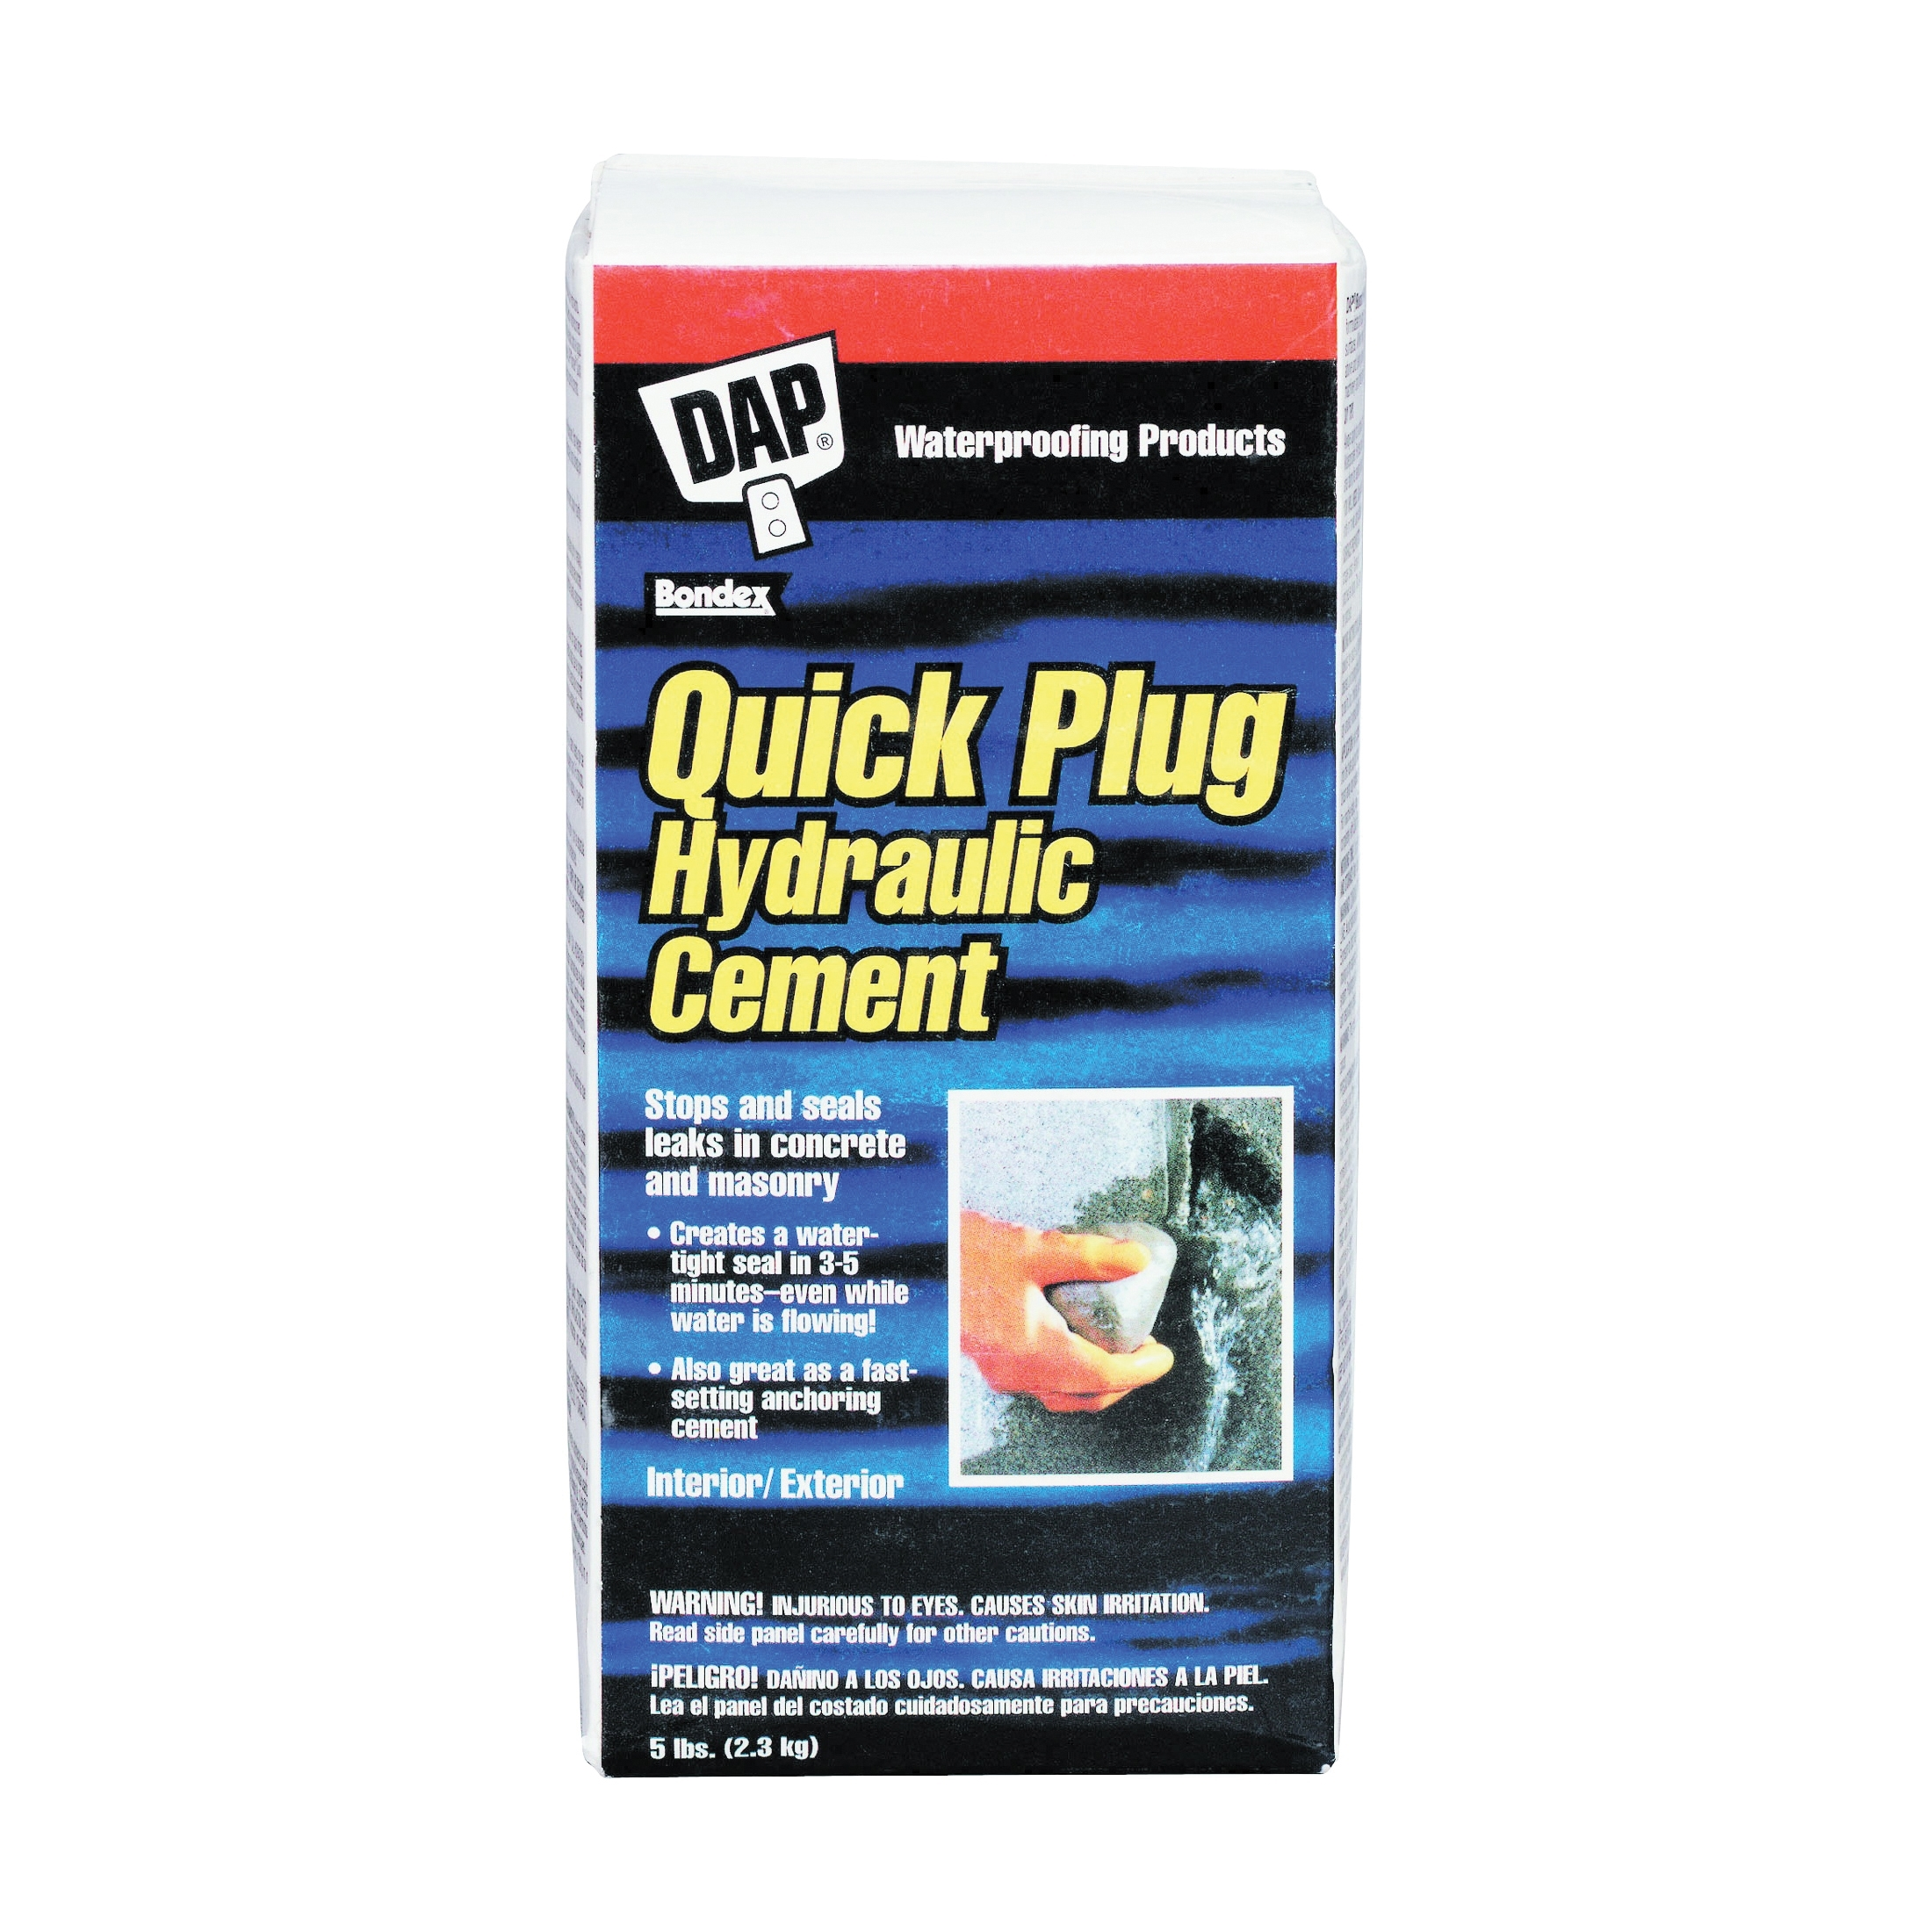 Picture of DAP Quick Plug 14086 Hydraulic and Anchoring Cement, Powder, Gray, 28 days Curing, 5 lb Package, Box